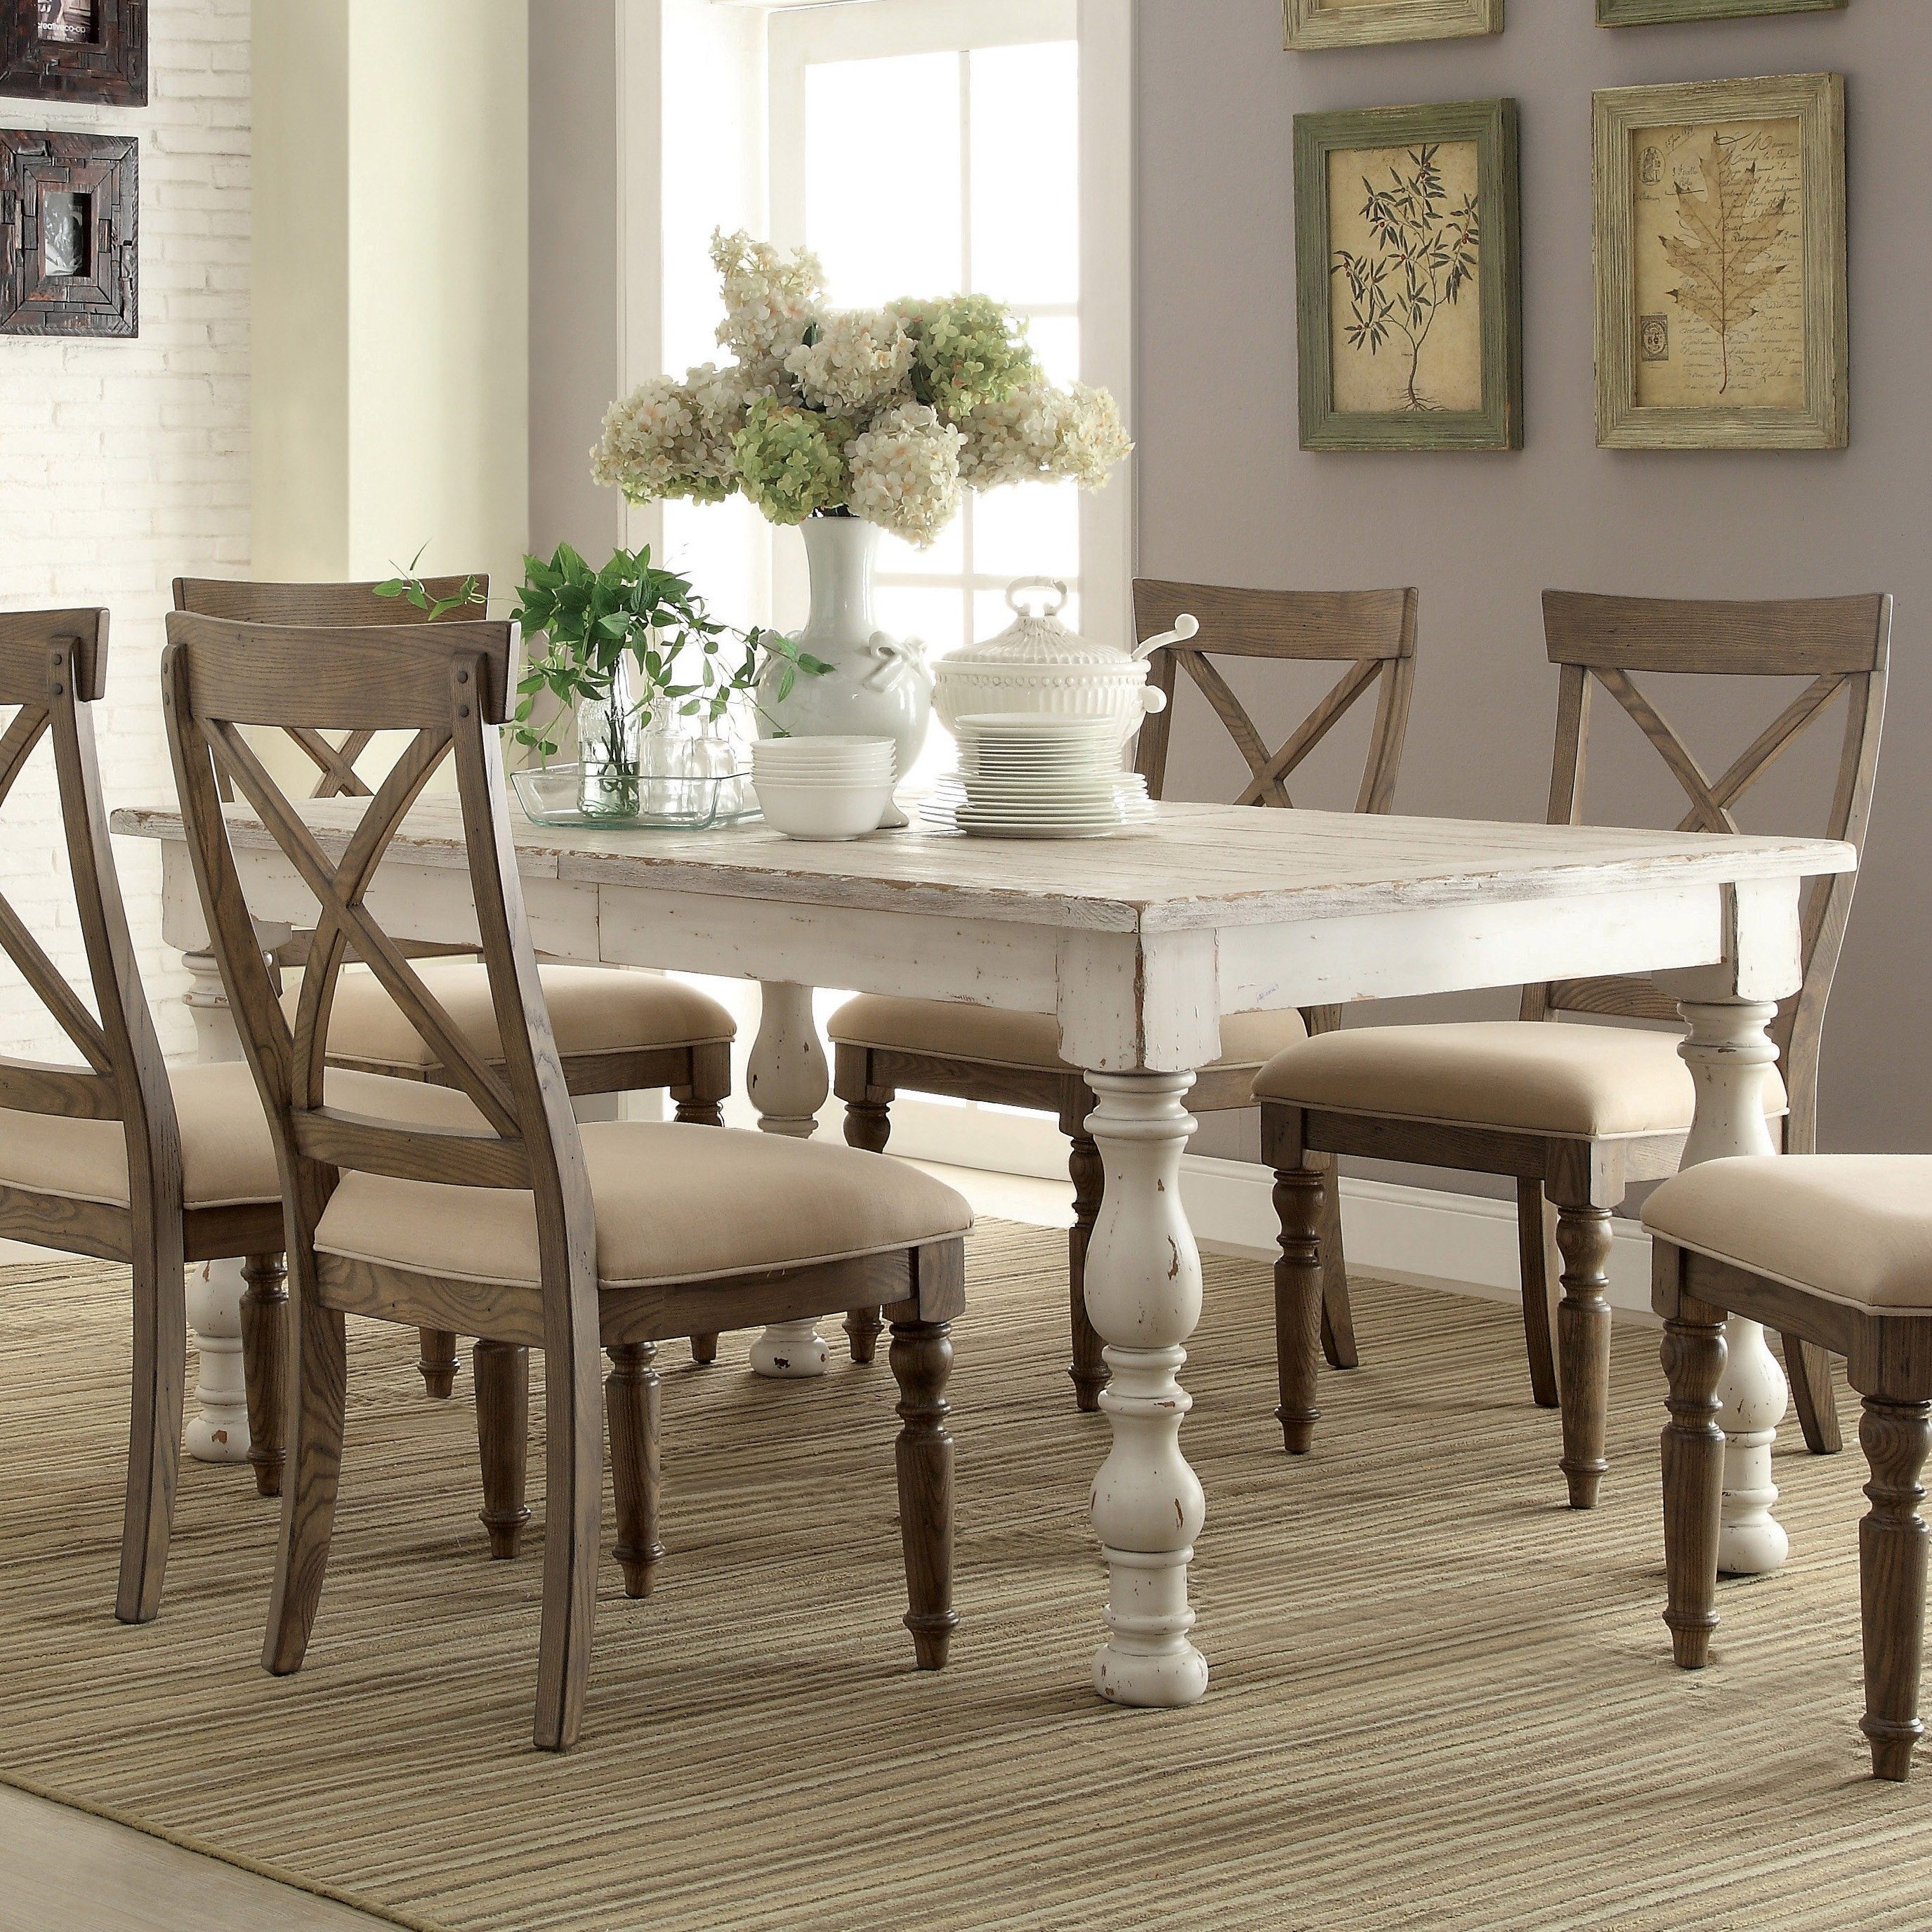 Table And Chair Dining Sets: Aberdeen Wood Rectangular Dining Table And Chairs In